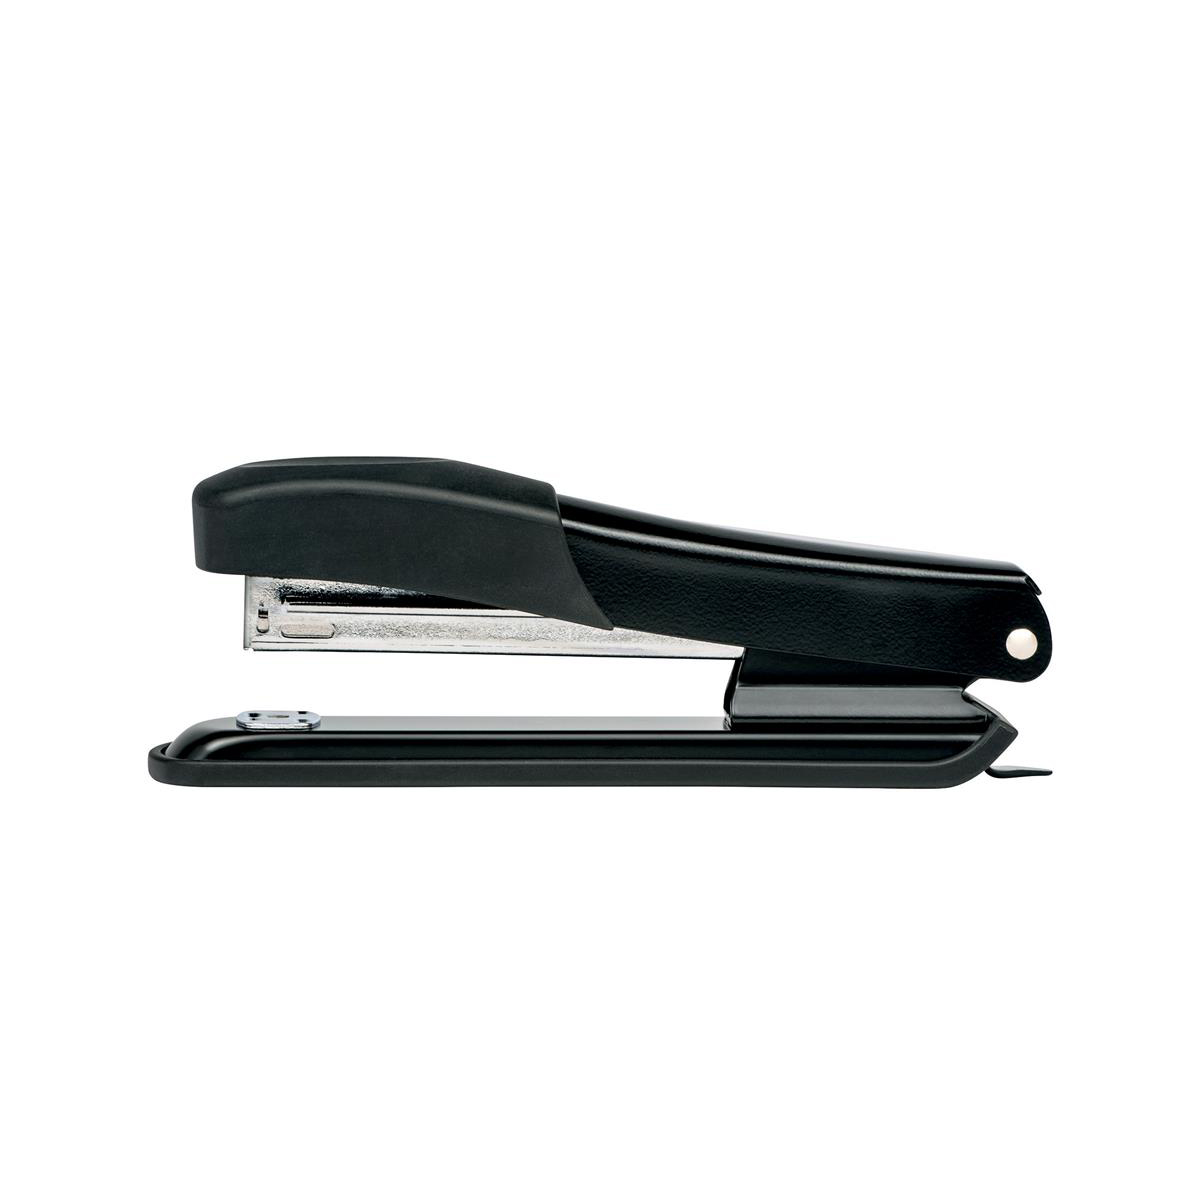 Desktop Staplers 5 Star Office Metal Full Strip Stapler 20 Sheet Capacity Takes 26/6 Staples Black